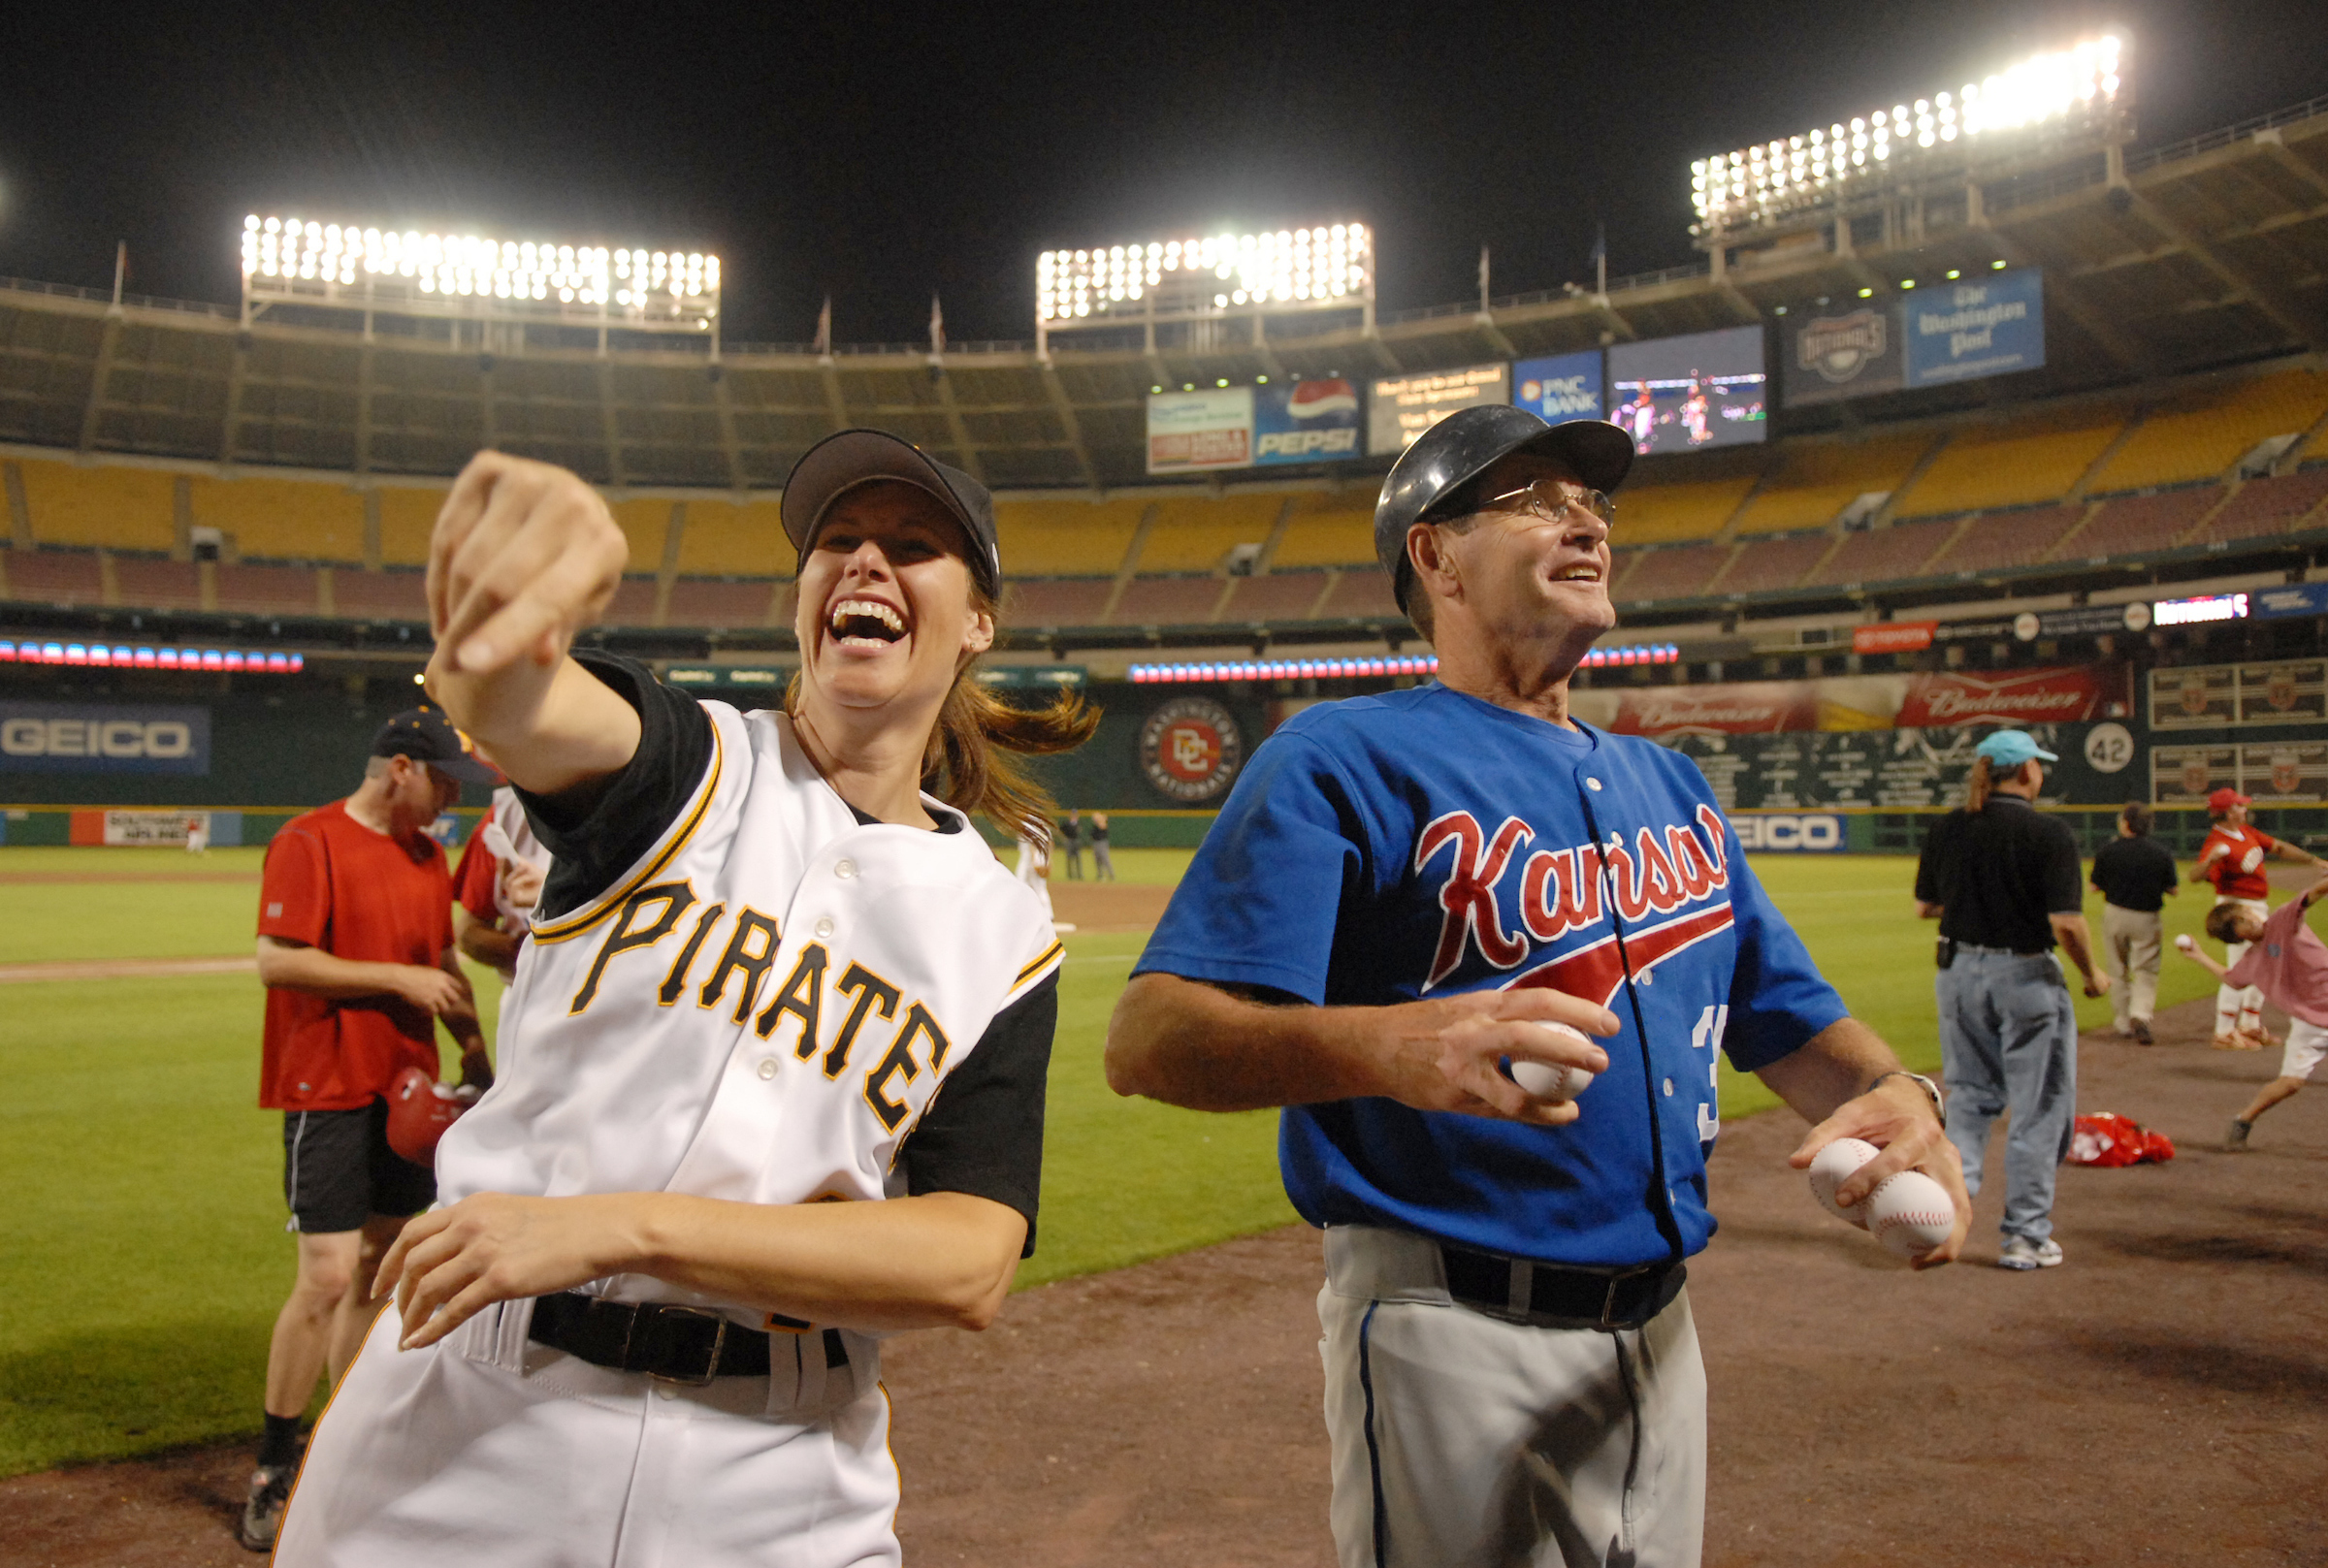 Rep. Melissa Hart, R-Pa., and Jim Ryun, R-Kan., throw foam balls to the crowd at the 45th Annual Roll Call Congressional Baseball game played at RFK stadium.